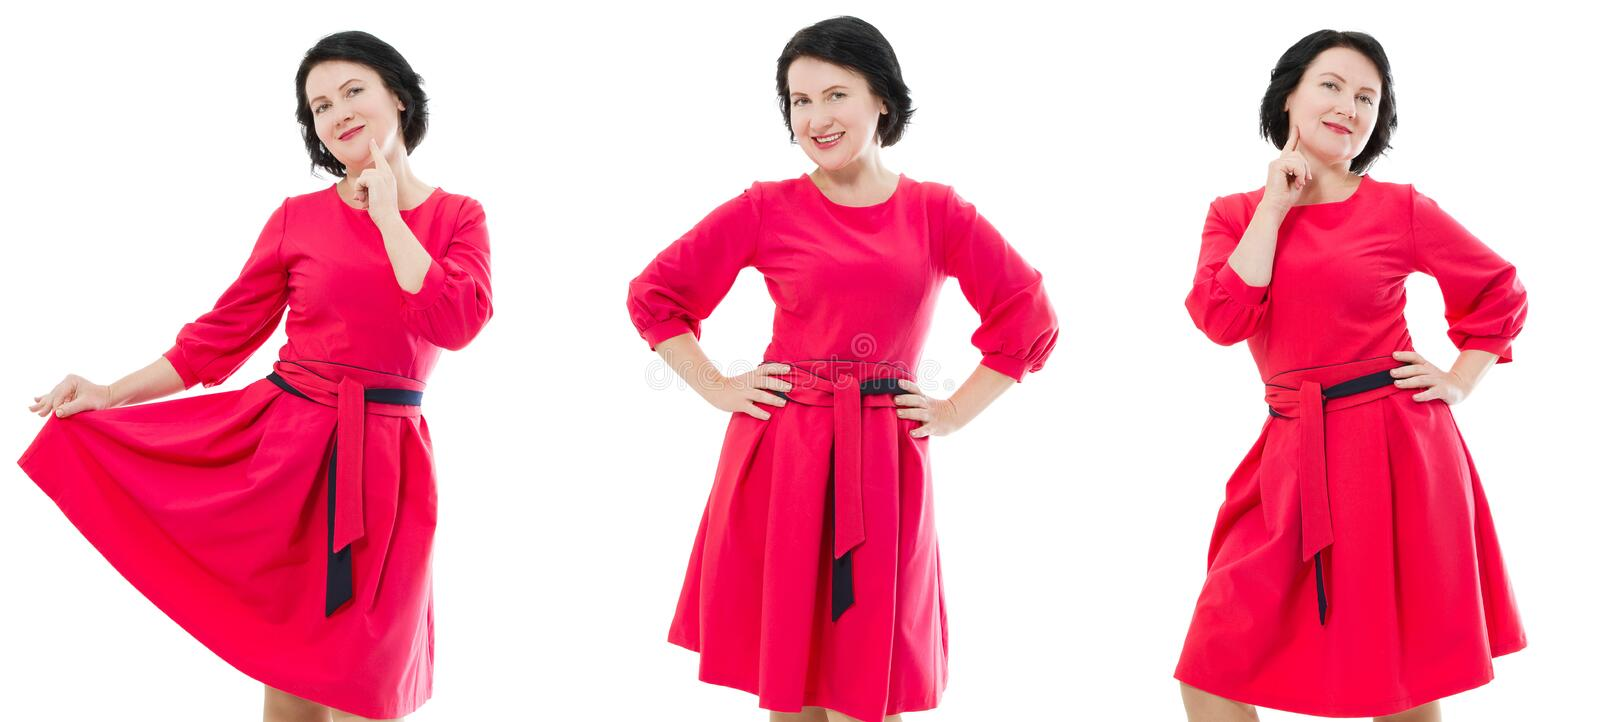 Happy middle age woman collage in fashion red dress with make up isolated on white background. Copy space.  royalty free stock photography